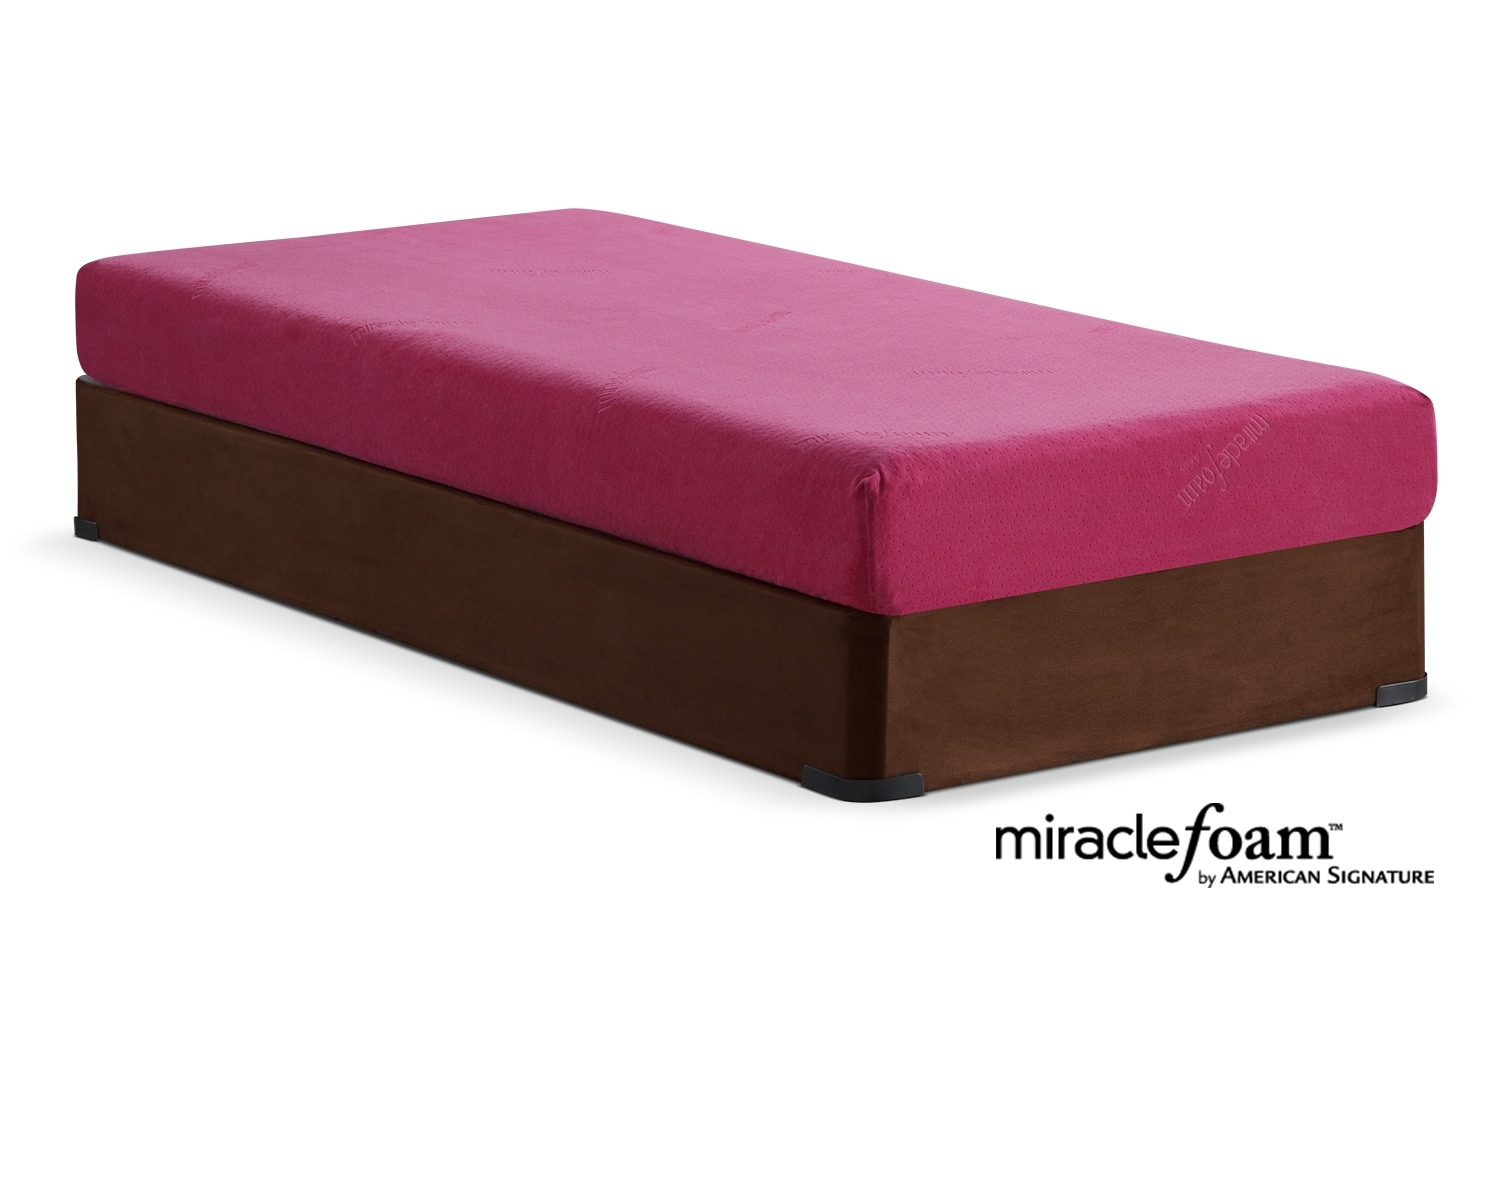 The Renew Meduim Firm Youth Mattress Collection